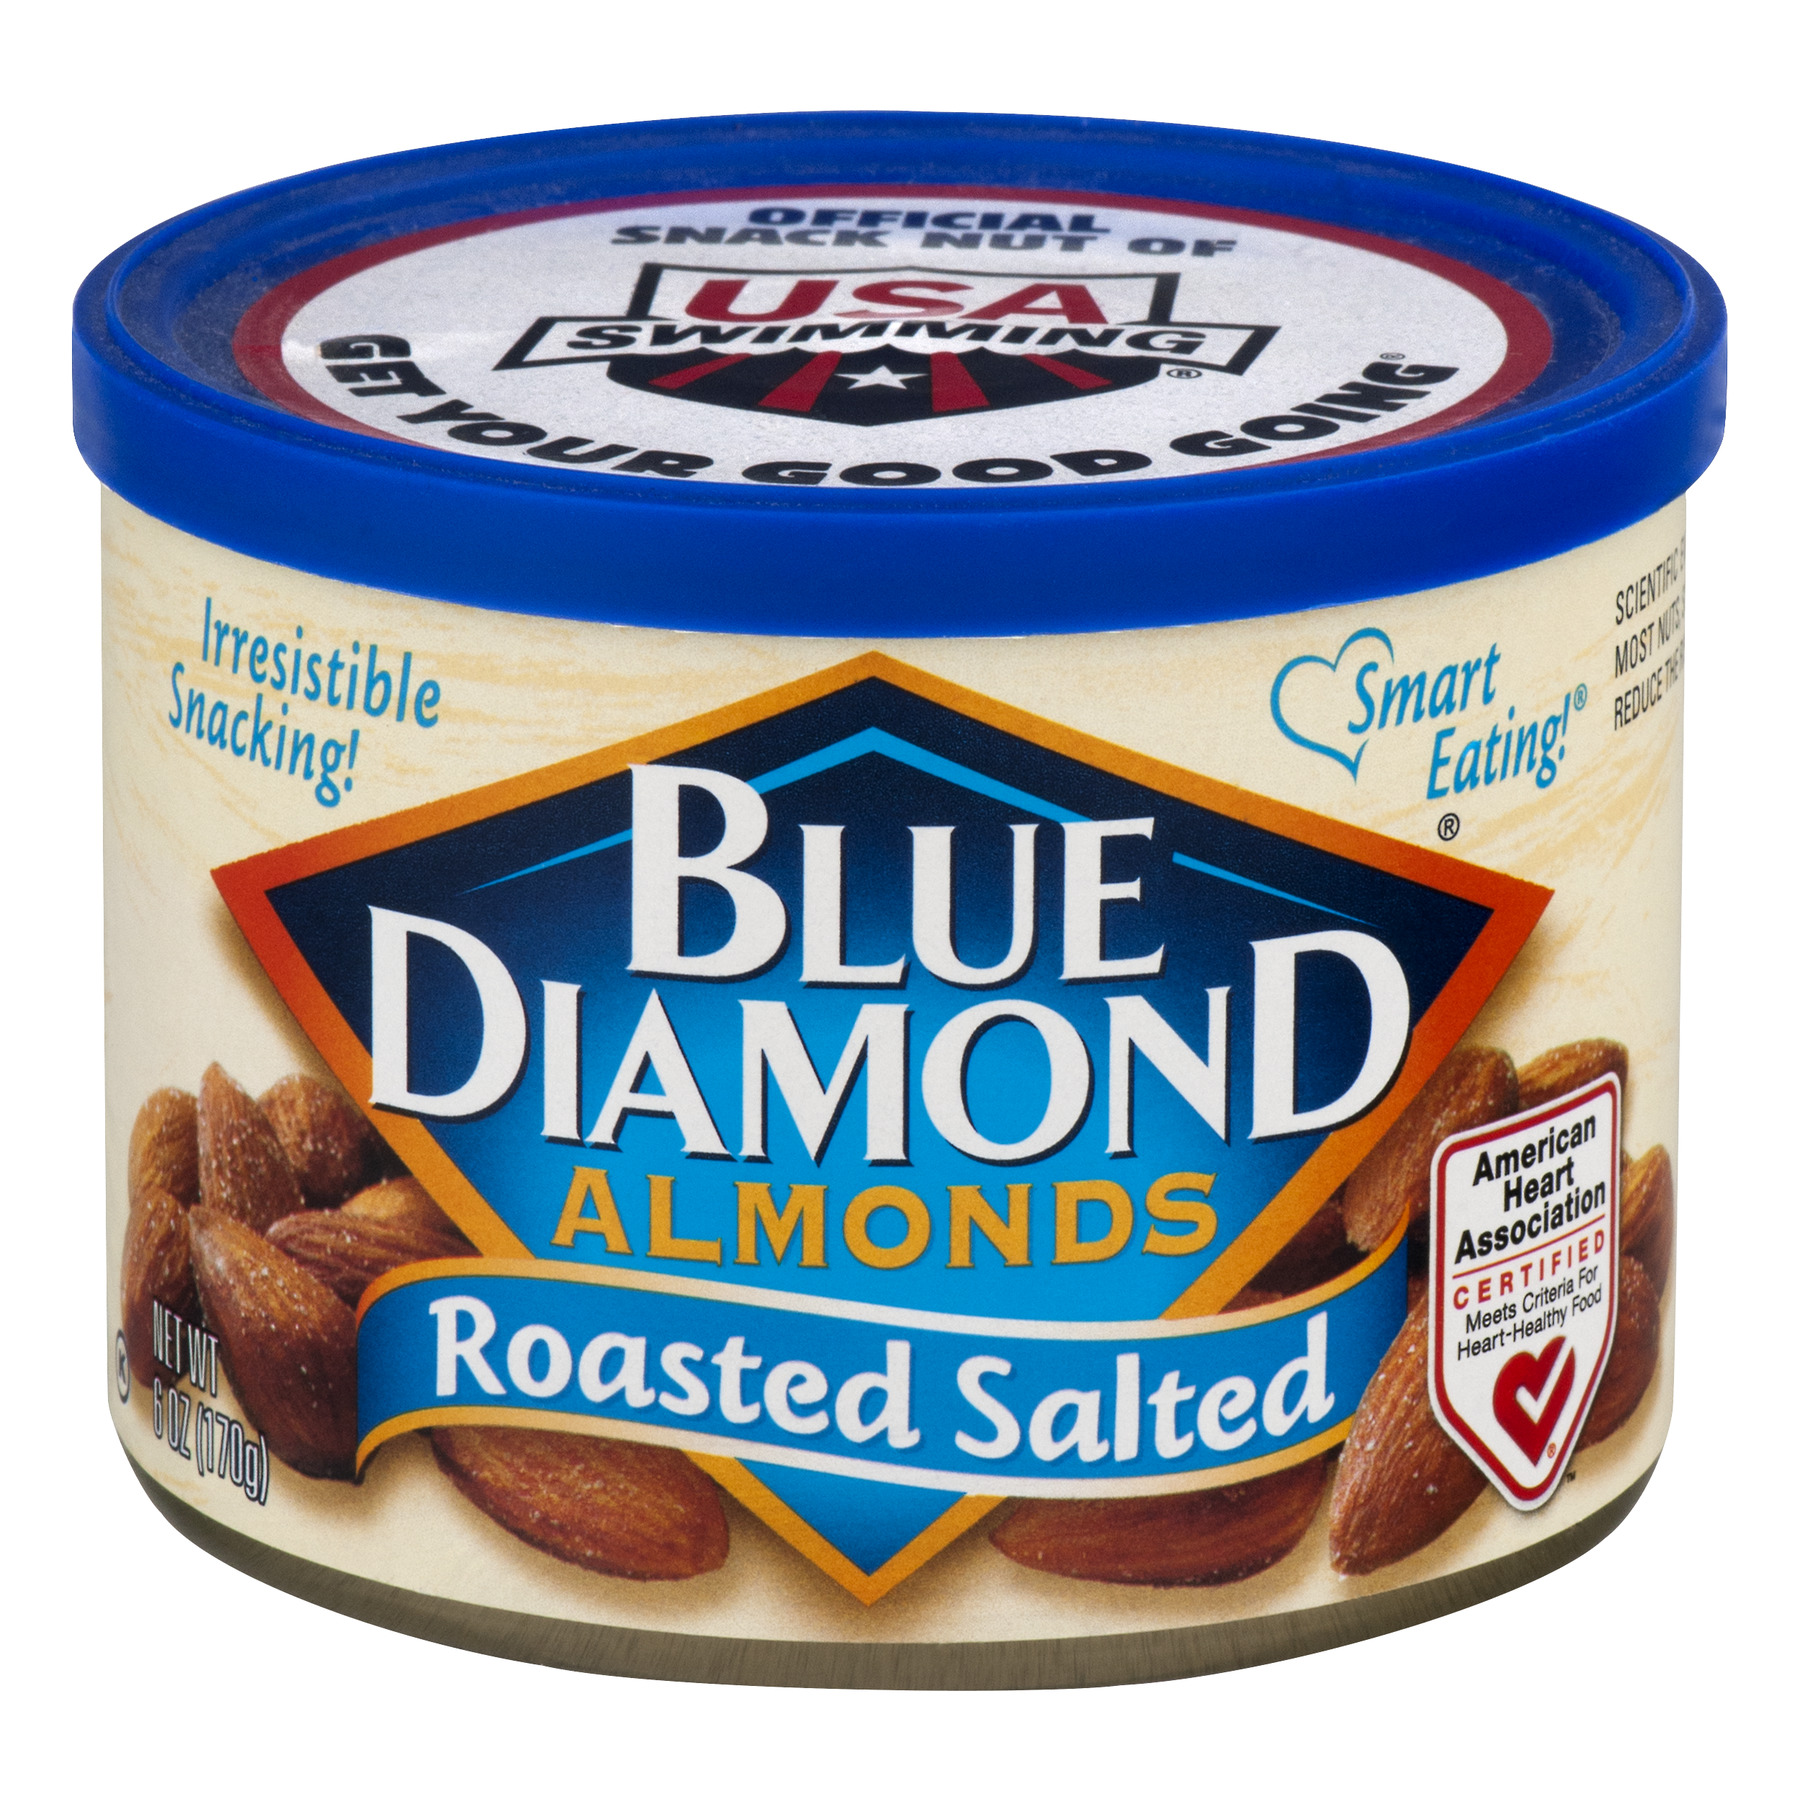 Blue Diamond Almonds Roasted Salted, 6.0 OZ